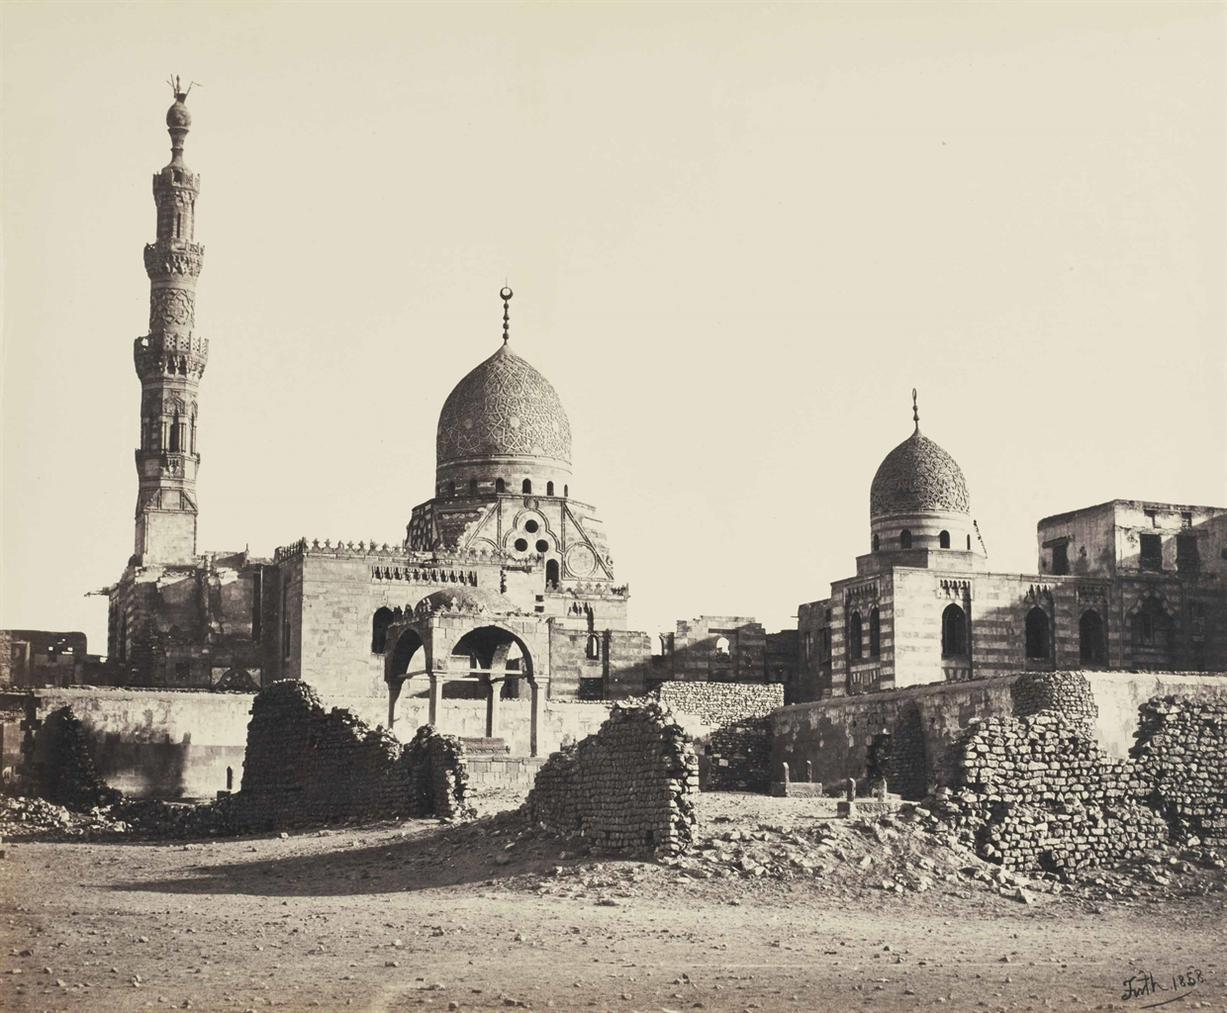 Frances Frith-Mosque Of Sultan Quait-Bey-1858